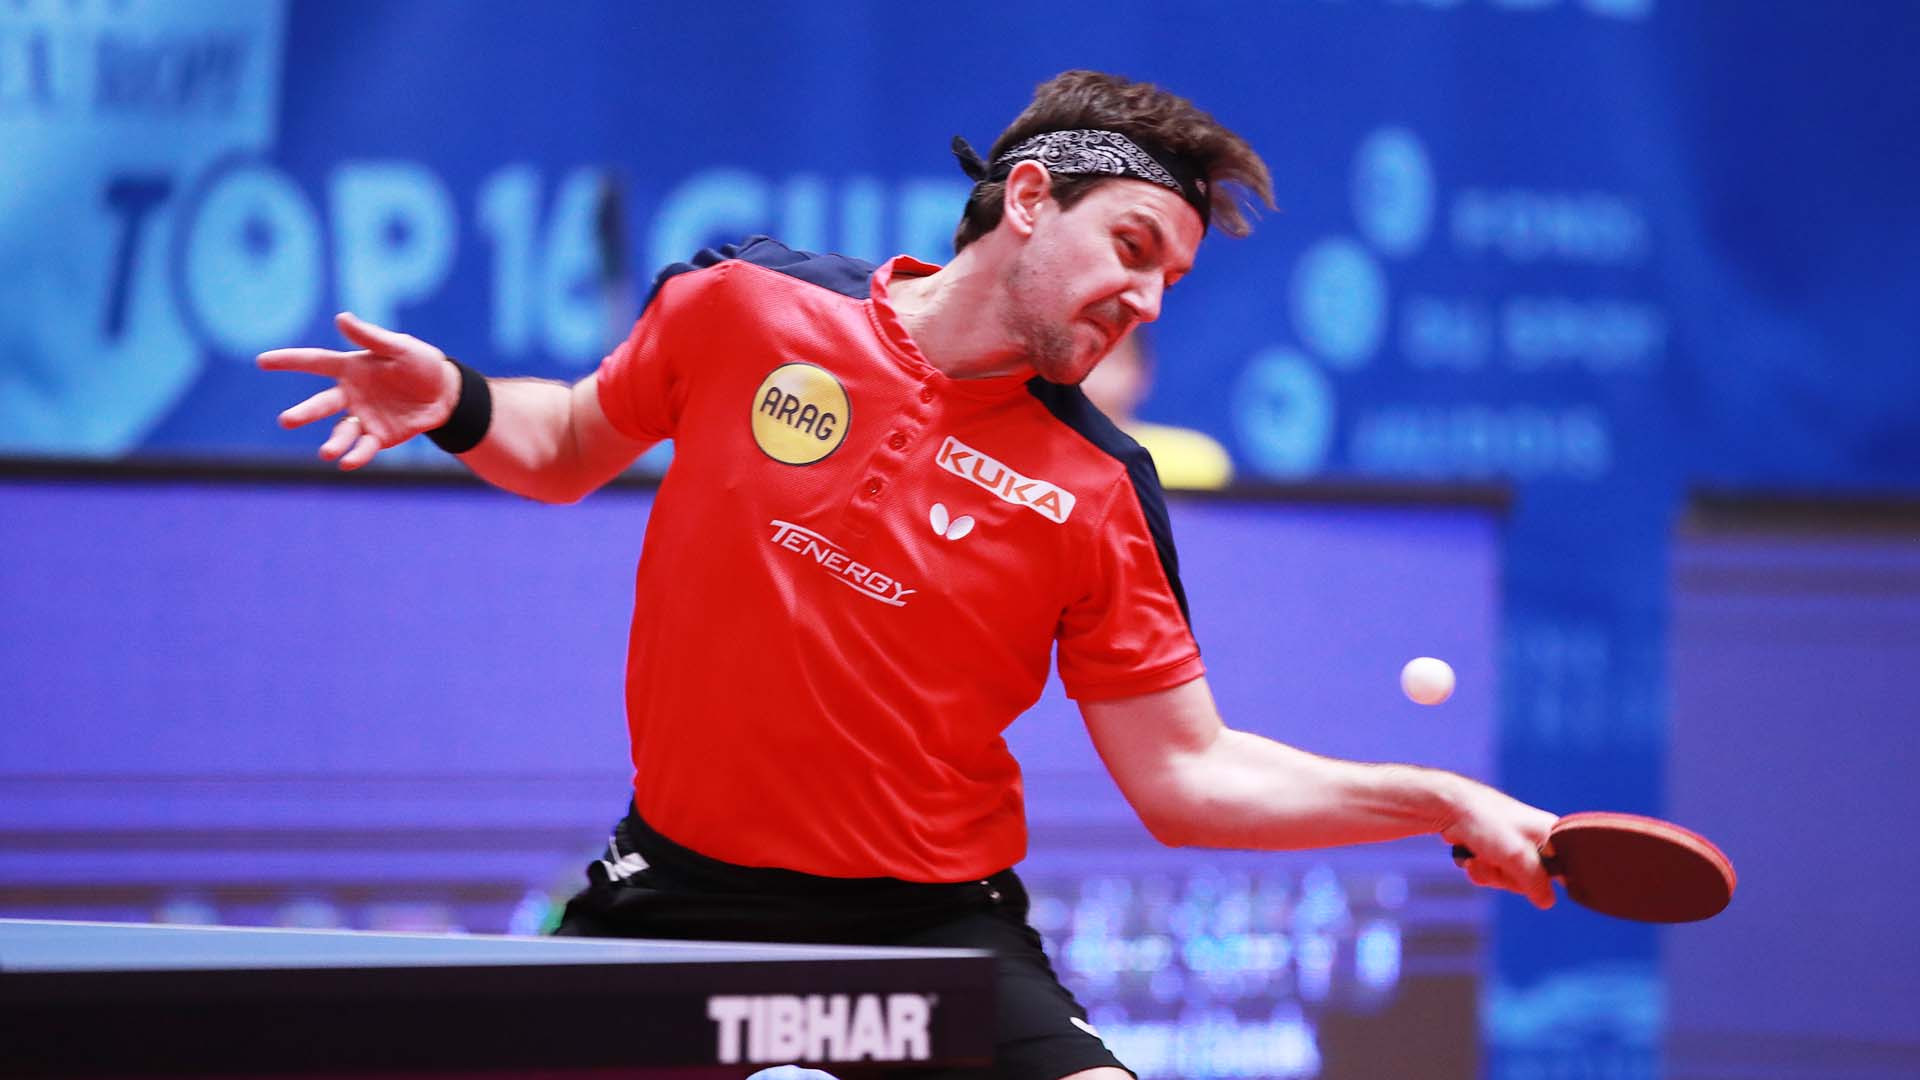 Boll upsets team-mate Ovtcharov in all-German final in ITTF Europe Top 16 Cup